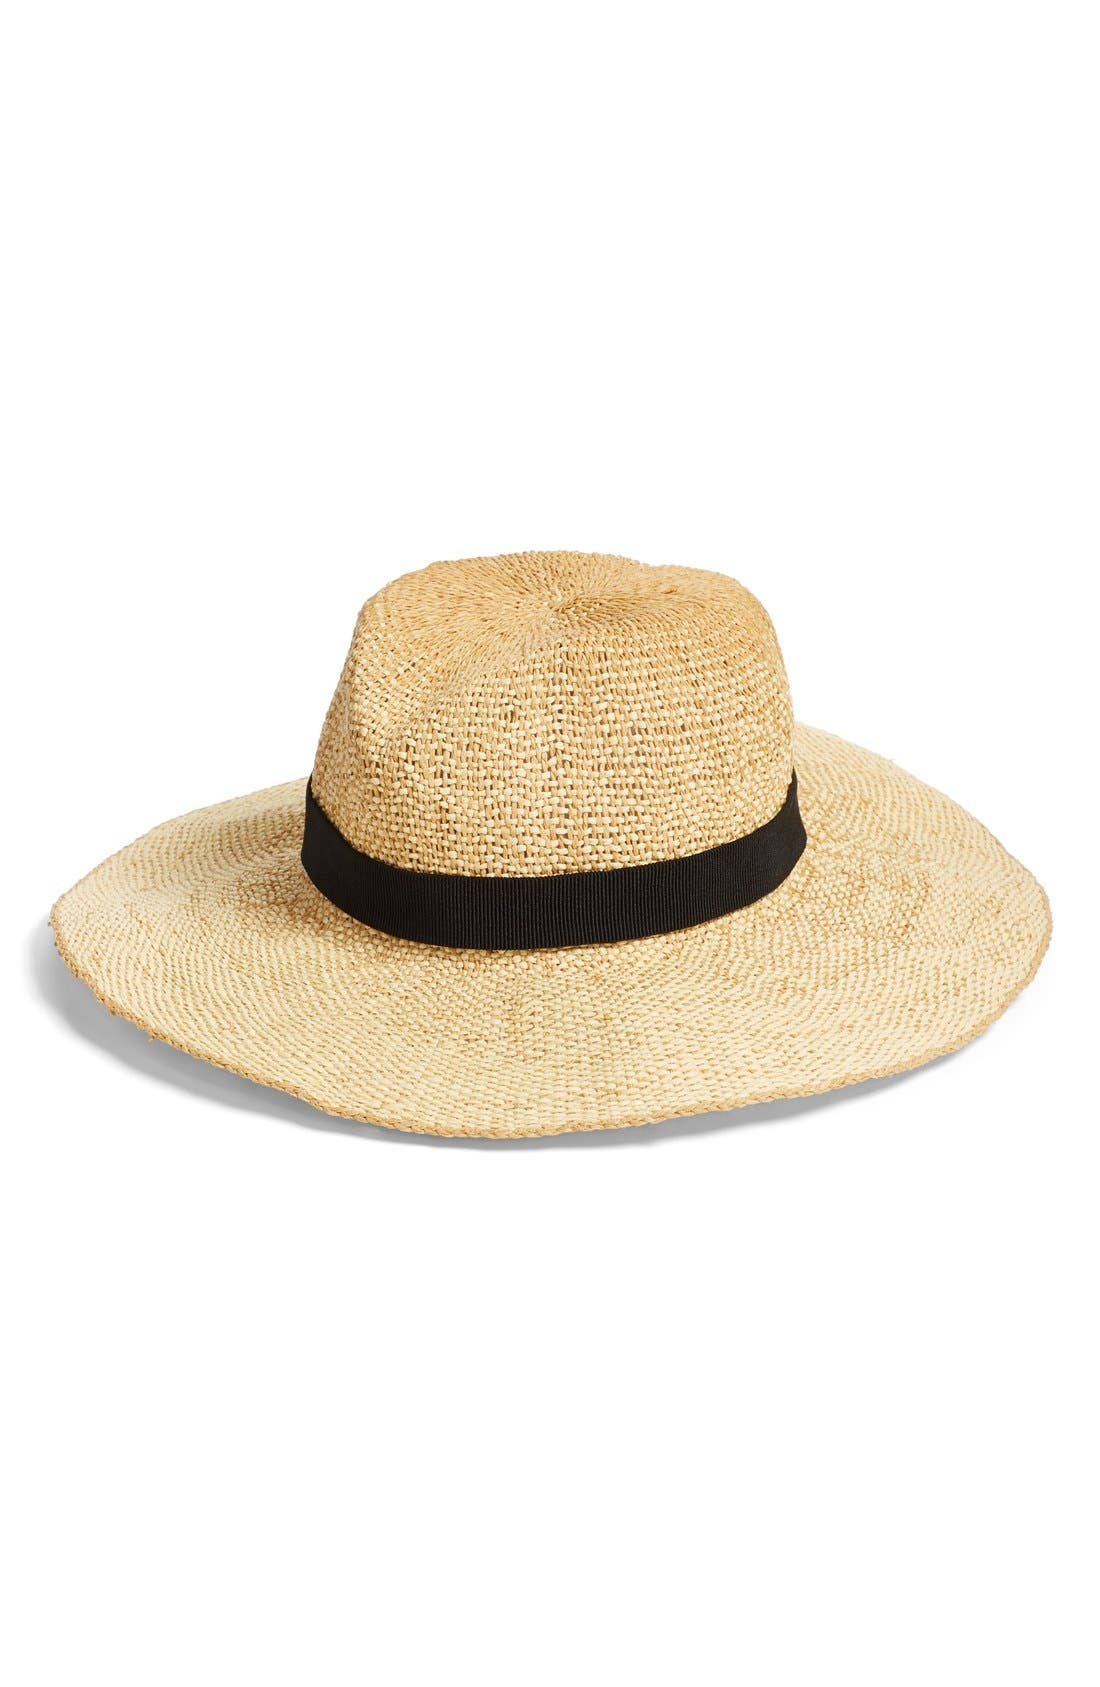 Main Image - Madewell Packable Straw Hat